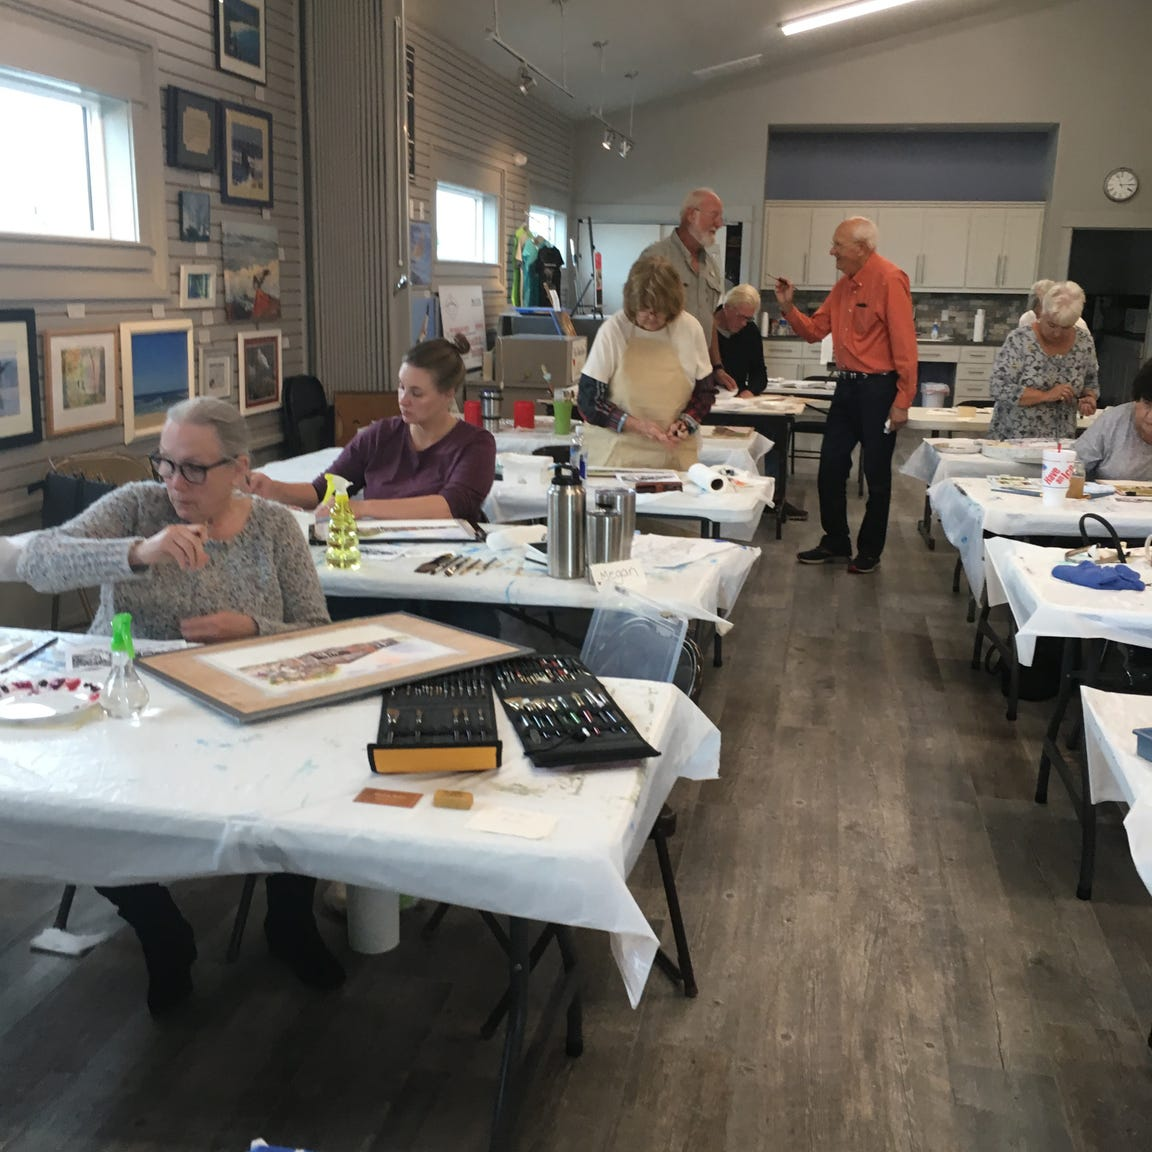 The Port Aransas Art Center offers classes in painting, drawing and more.